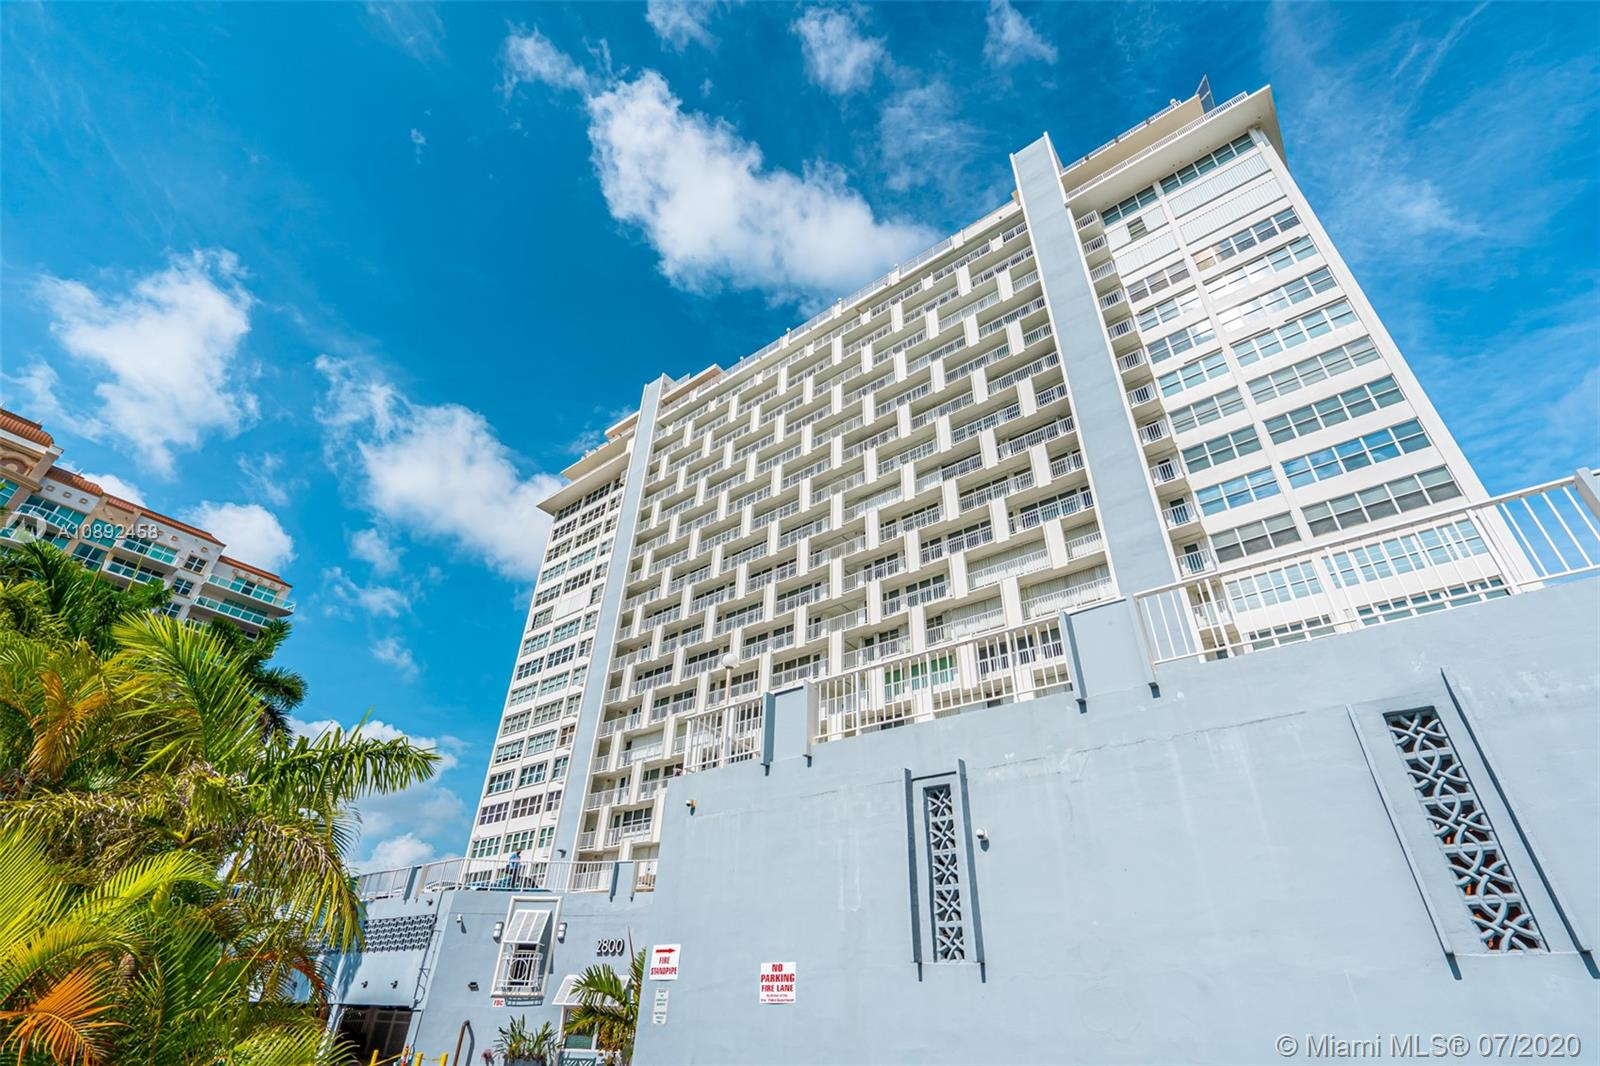 """Updated waterfront 2bed/2bath high (18th) floor condo with expansive intercoastal, ocean and lush park views. Luxury gated building just steps to the beach with great features like stylish common areas, semi-private elevators, forever views from roof top pool and gym. High Impact windows & doors. Unit features large balcony and waterviews from every room. Open kitchen with premiumn SS appliances,  custom cabinets, granite countertops & backsplash.  You have your own great room for entertaining with living room, dining area and kitchen all open with access to the balcony. Beautiful 24"""" porcelain floors add elegance. Large owners suite faces the ocean. Renovated bathrooms too. Pets to 25lbs are welcome with a covered pet walk. Full size Washer/Dryer in unit. Don't miss it!"""